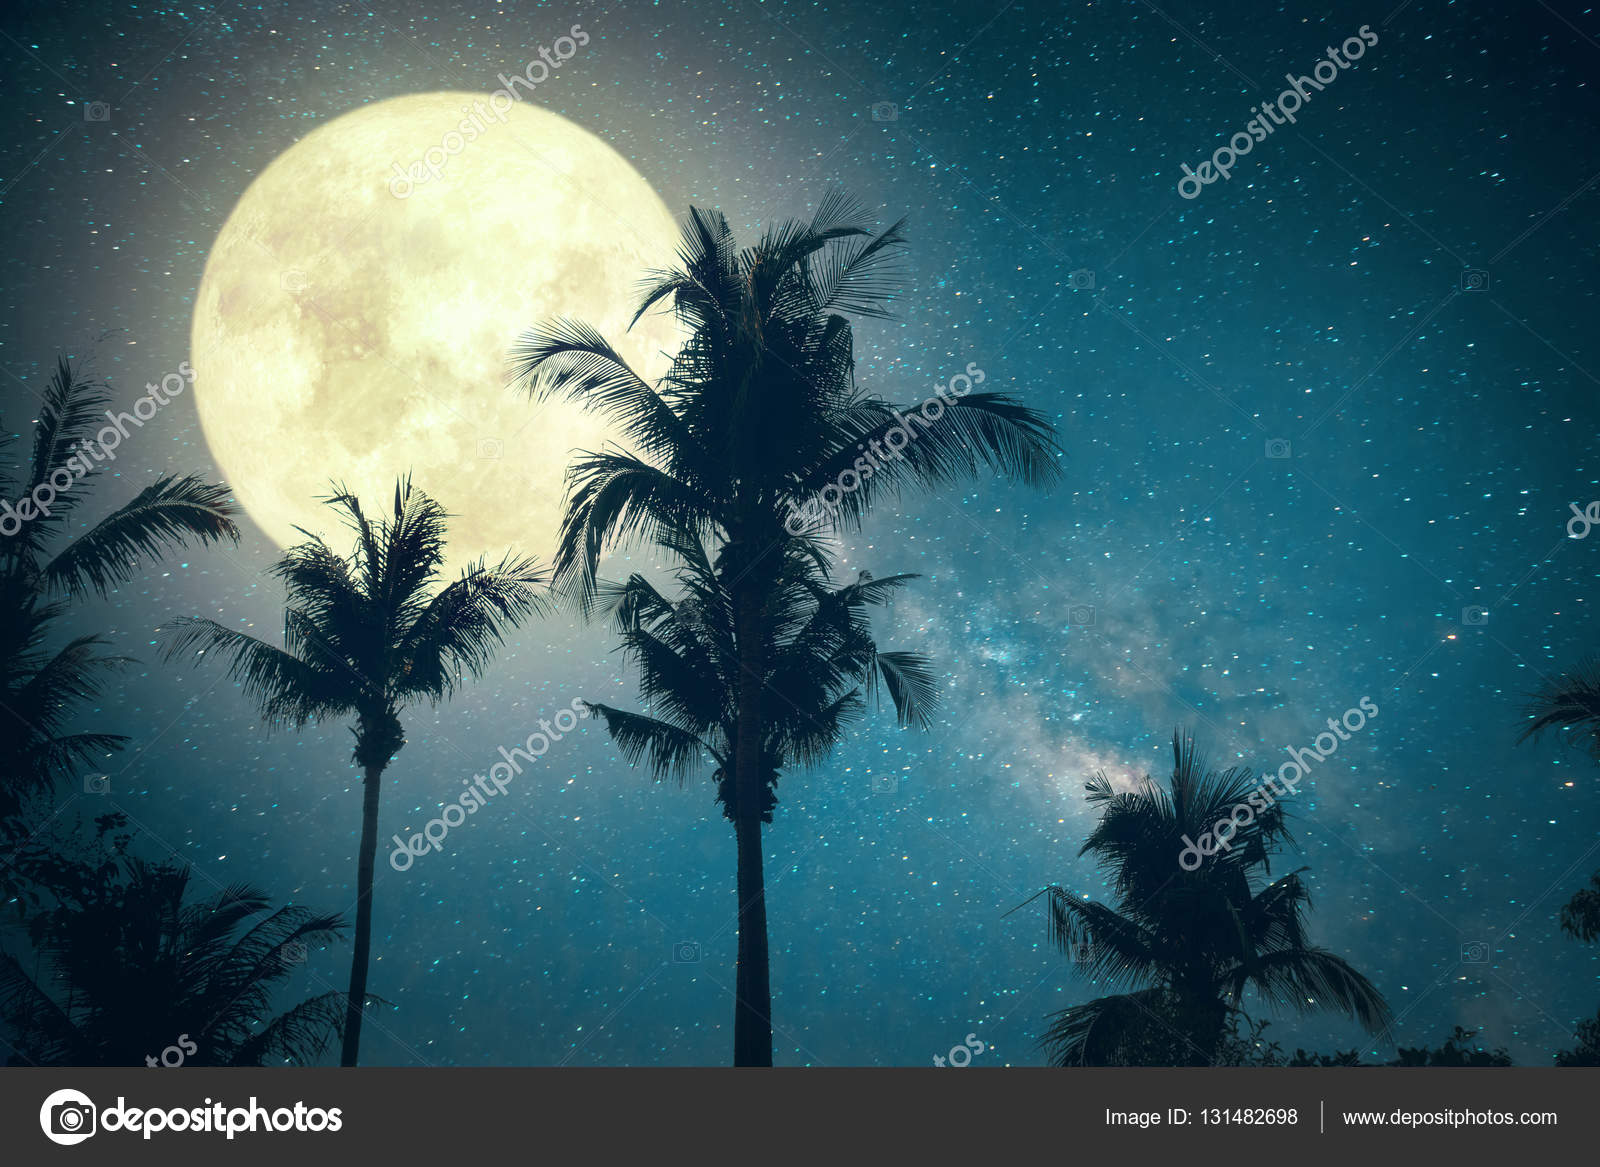 Beautiful Fantasy Palm Tree Tropical Beach With Milky Way Star In Night Skies Wonderful Full Moon